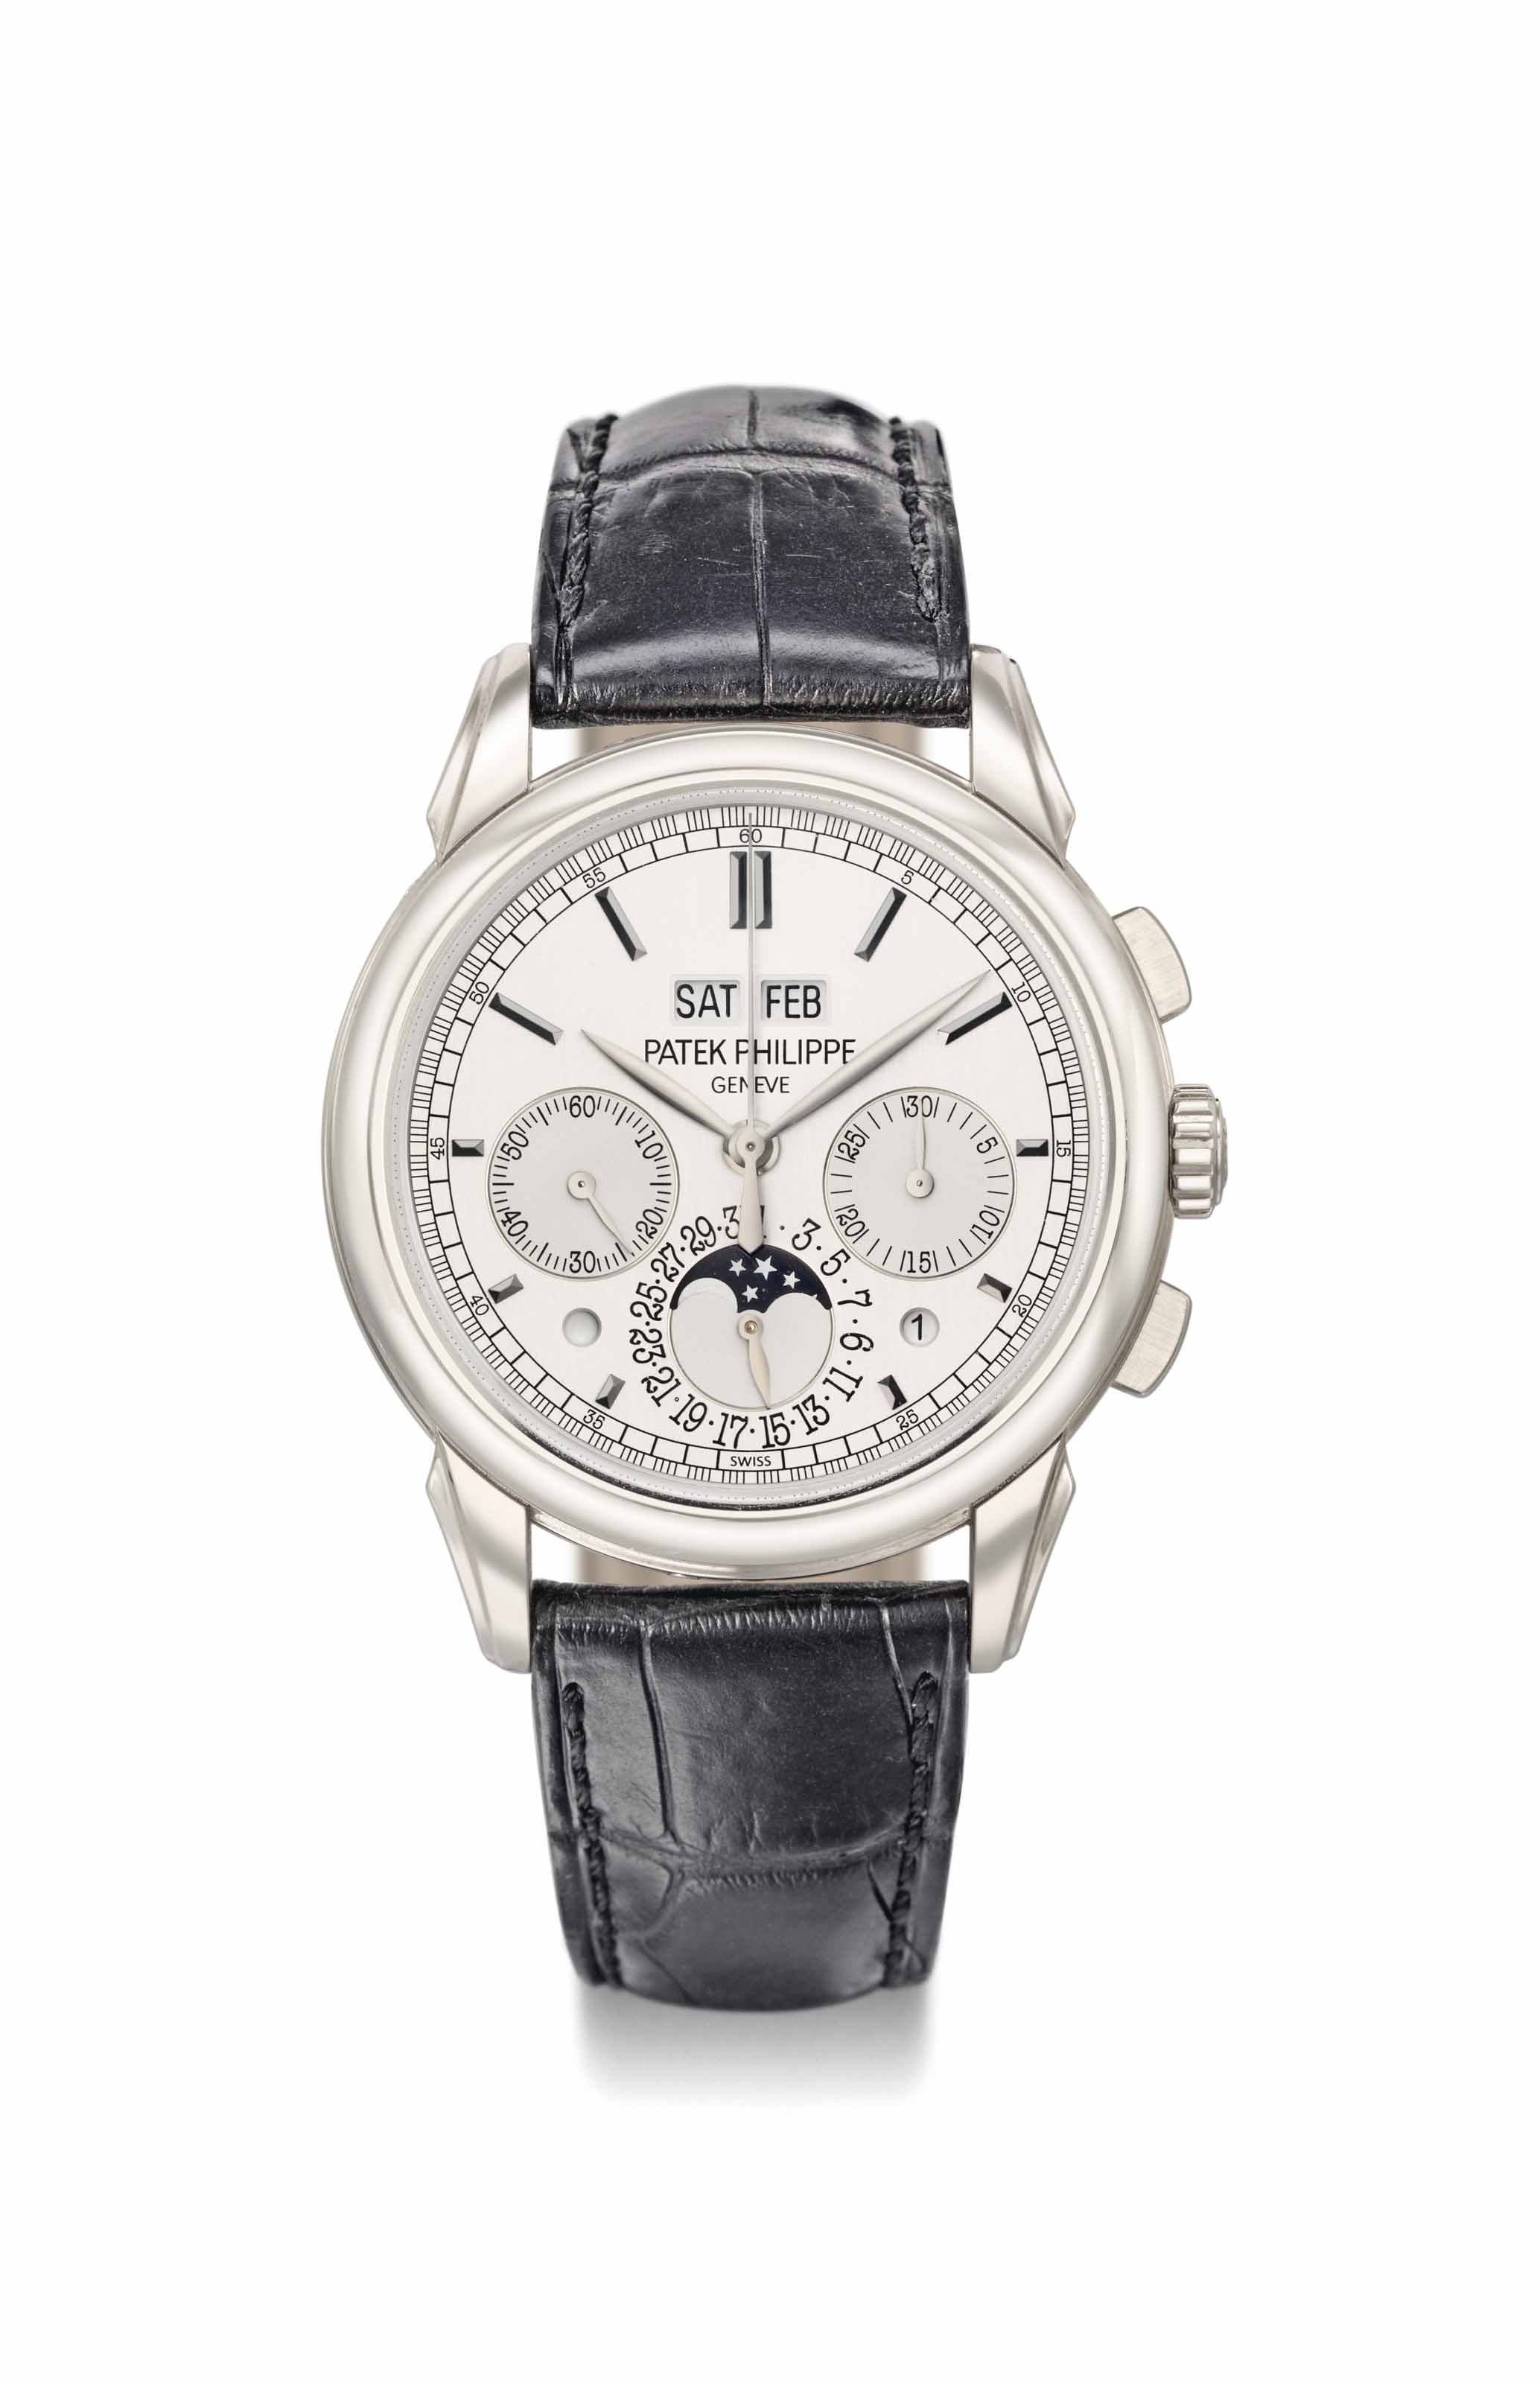 Patek philippe a fine 18k white gold perpetual calendar chronograph wristwatch with moon phases for Patek philippe geneve